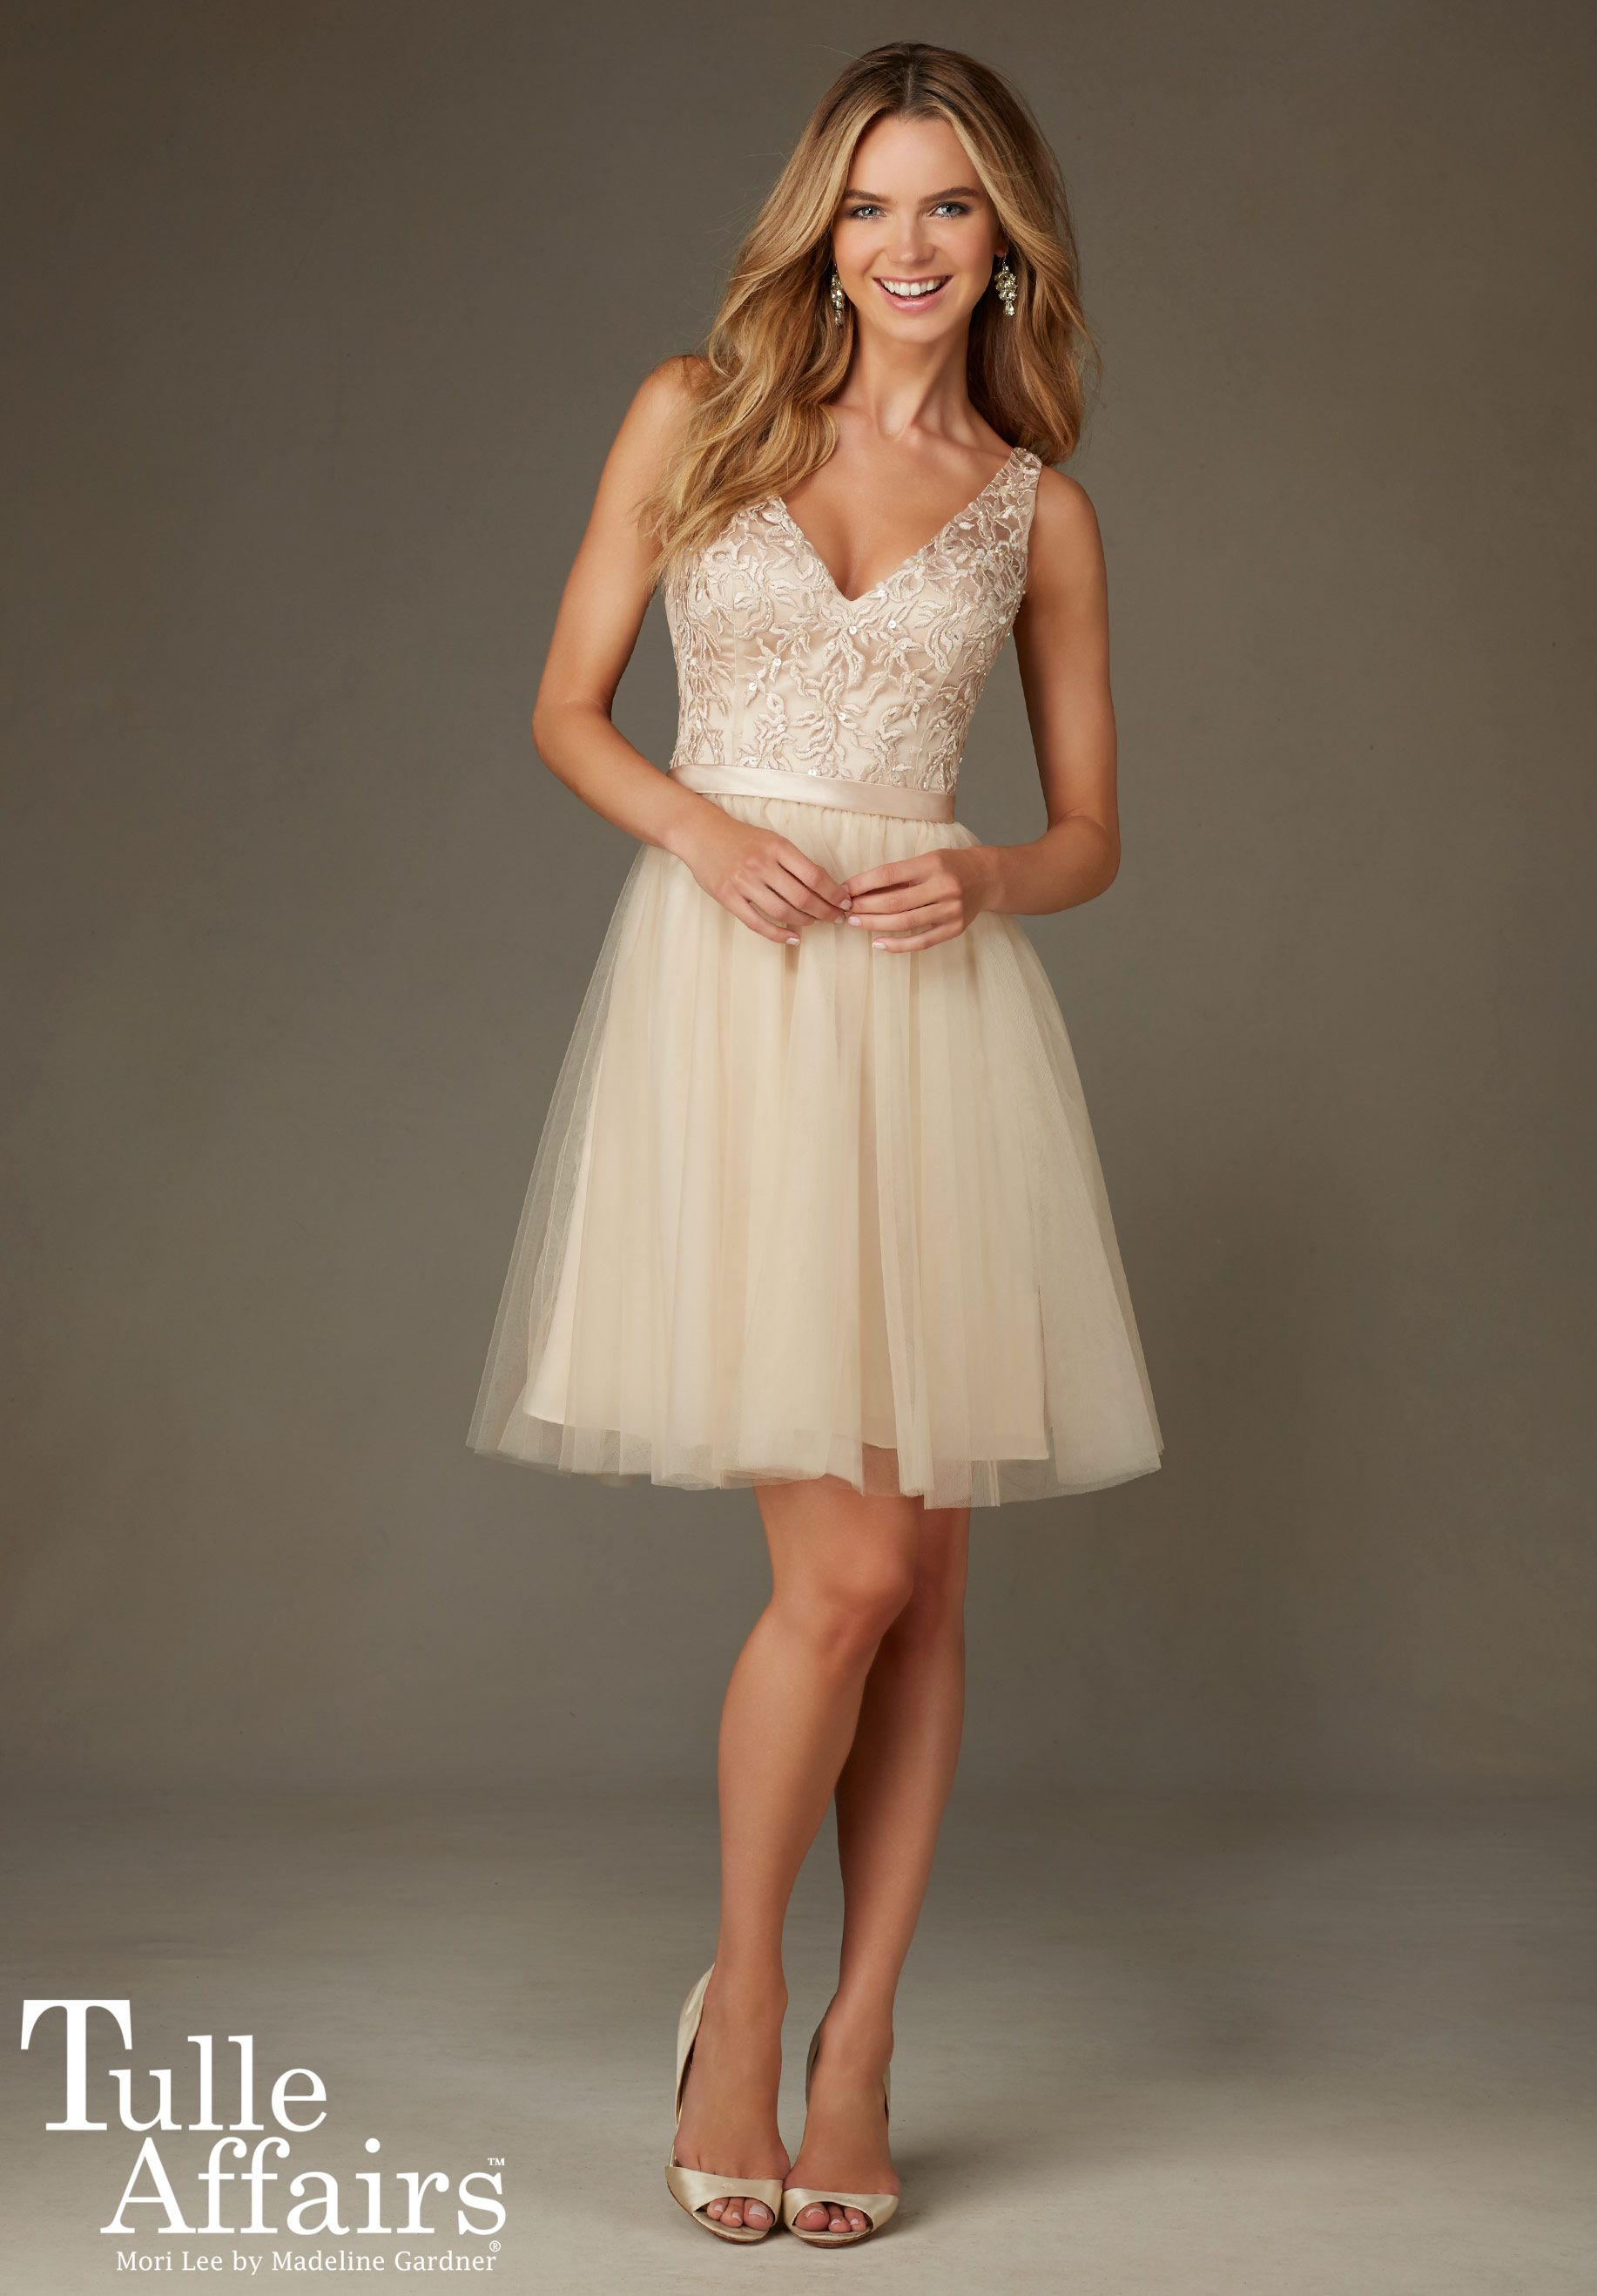 Mori lee style no hair pinterest mori lee tulle dress and